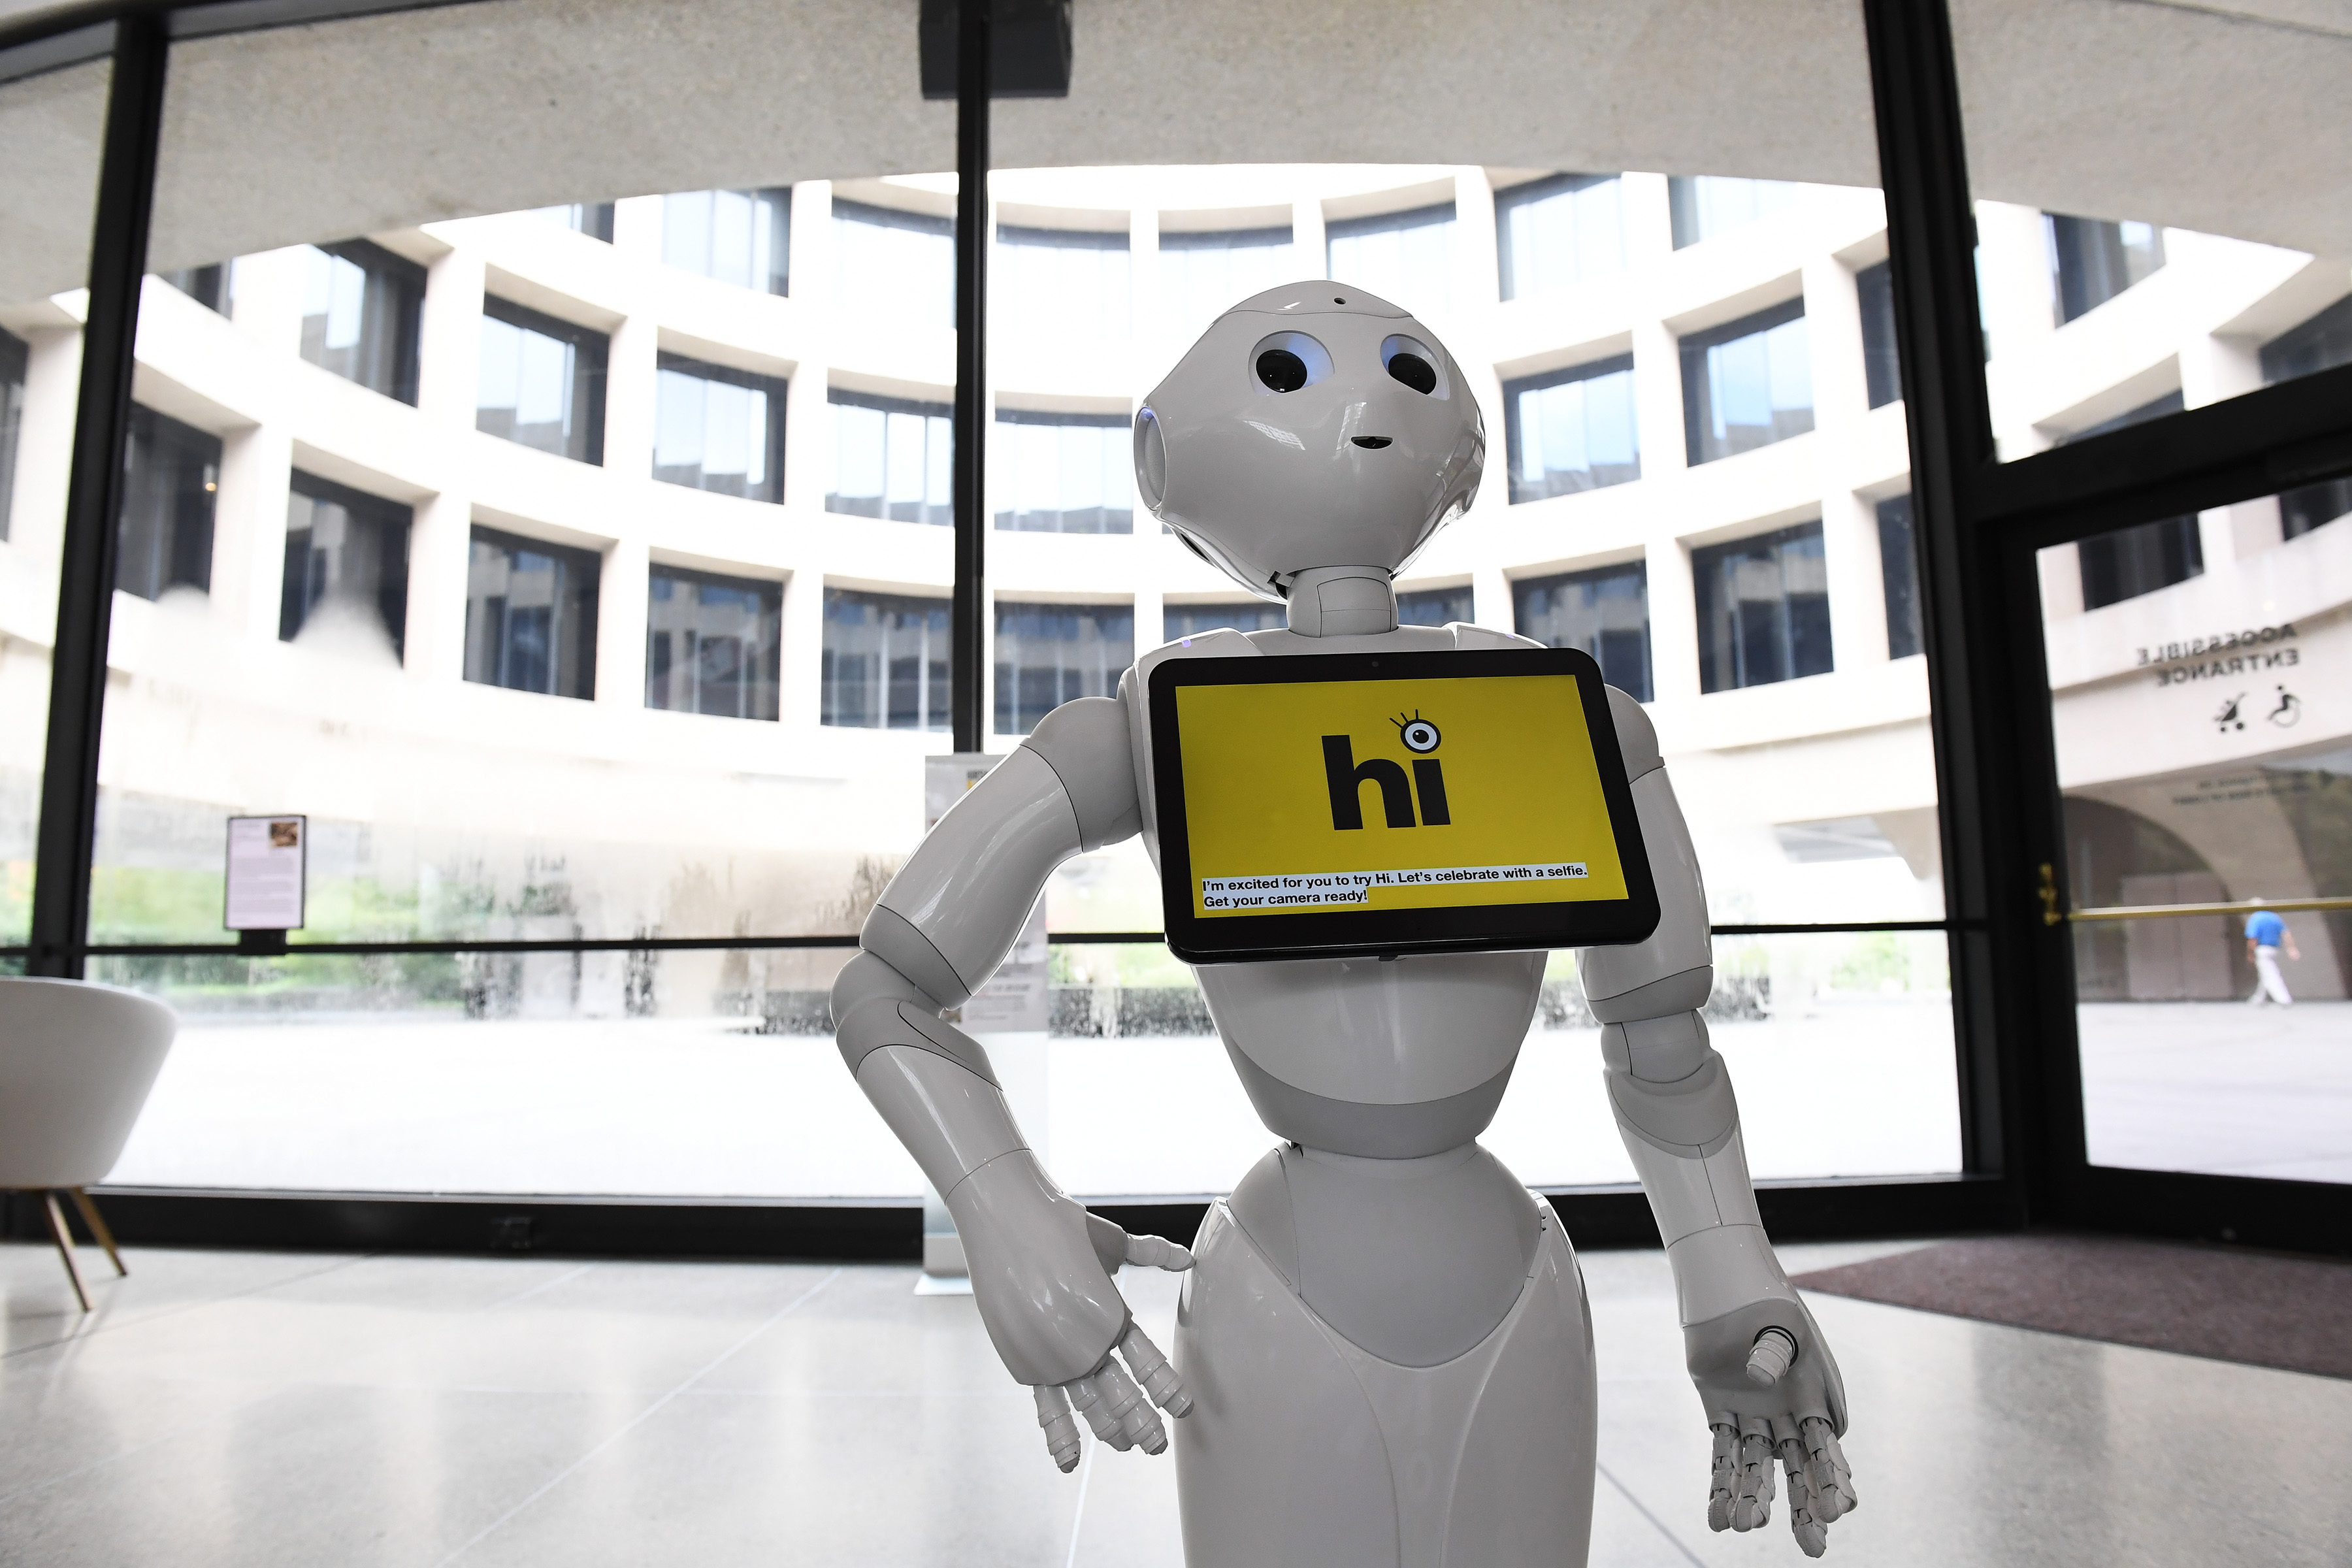 Pepper, an interactive robot is seen at the Smithsonian's Hirshhorn Museum on Monday October 08, 2018 in Washington, DC. The robots are also being used at other Smithsonian locations.